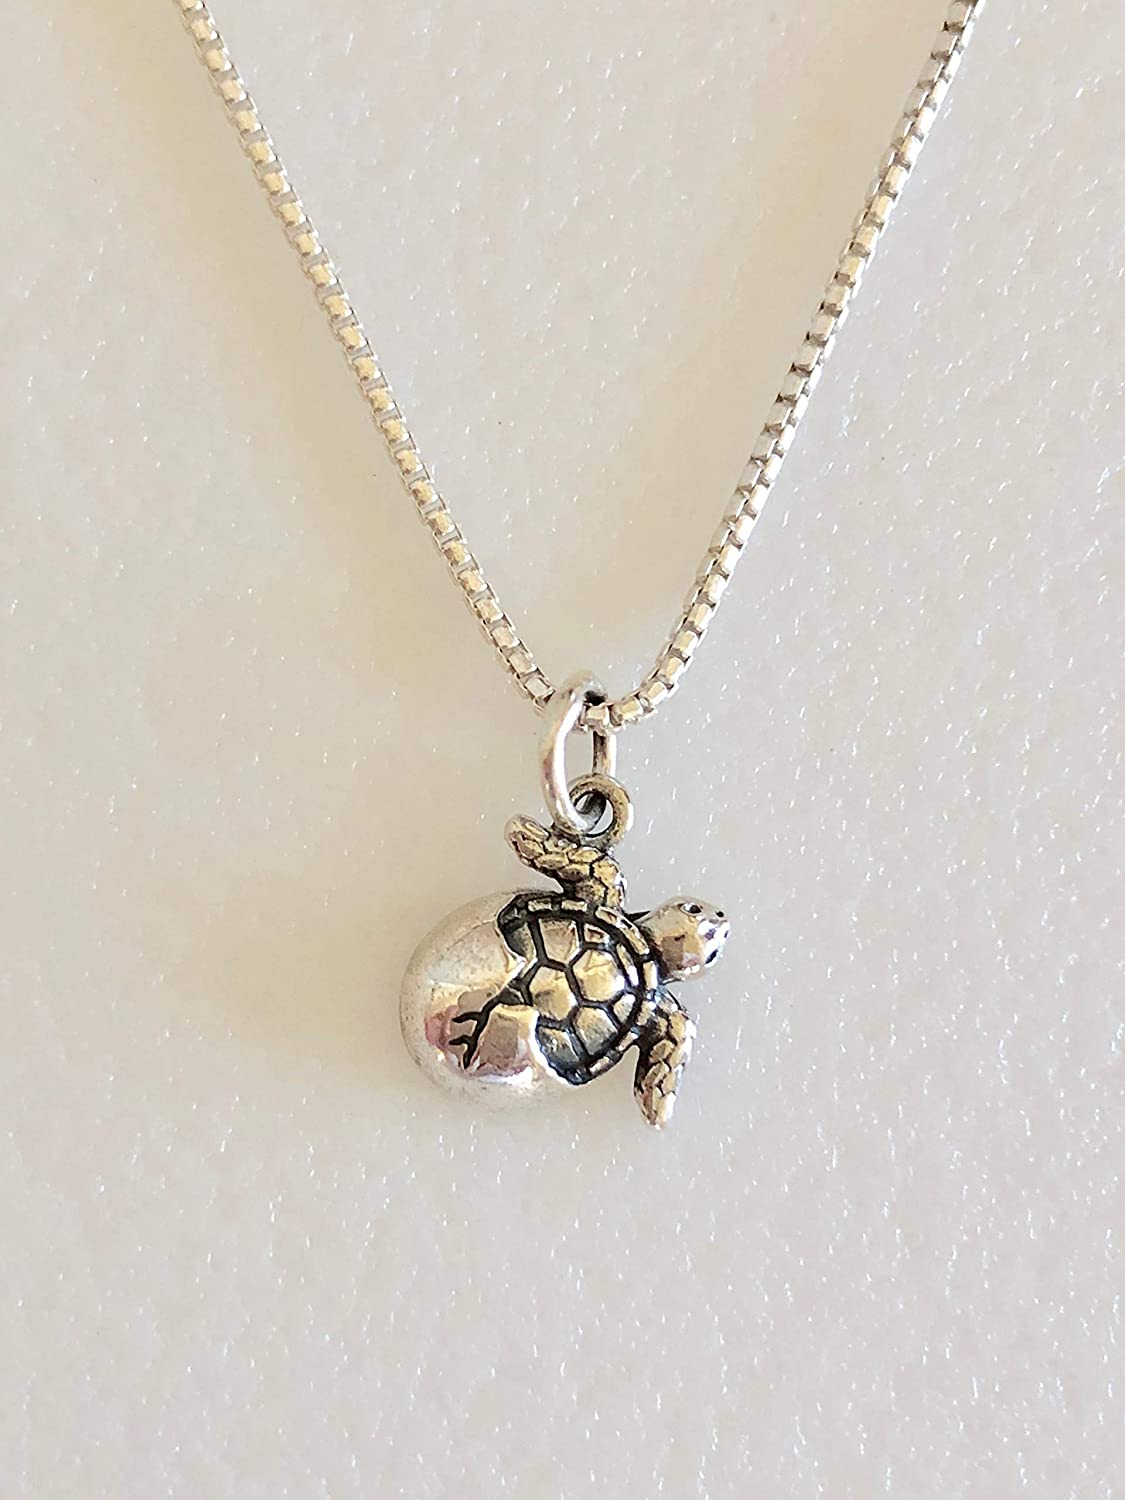 Brand New 925 Sterling Silver Small Turtle Pendant Necklace Gift Boxed